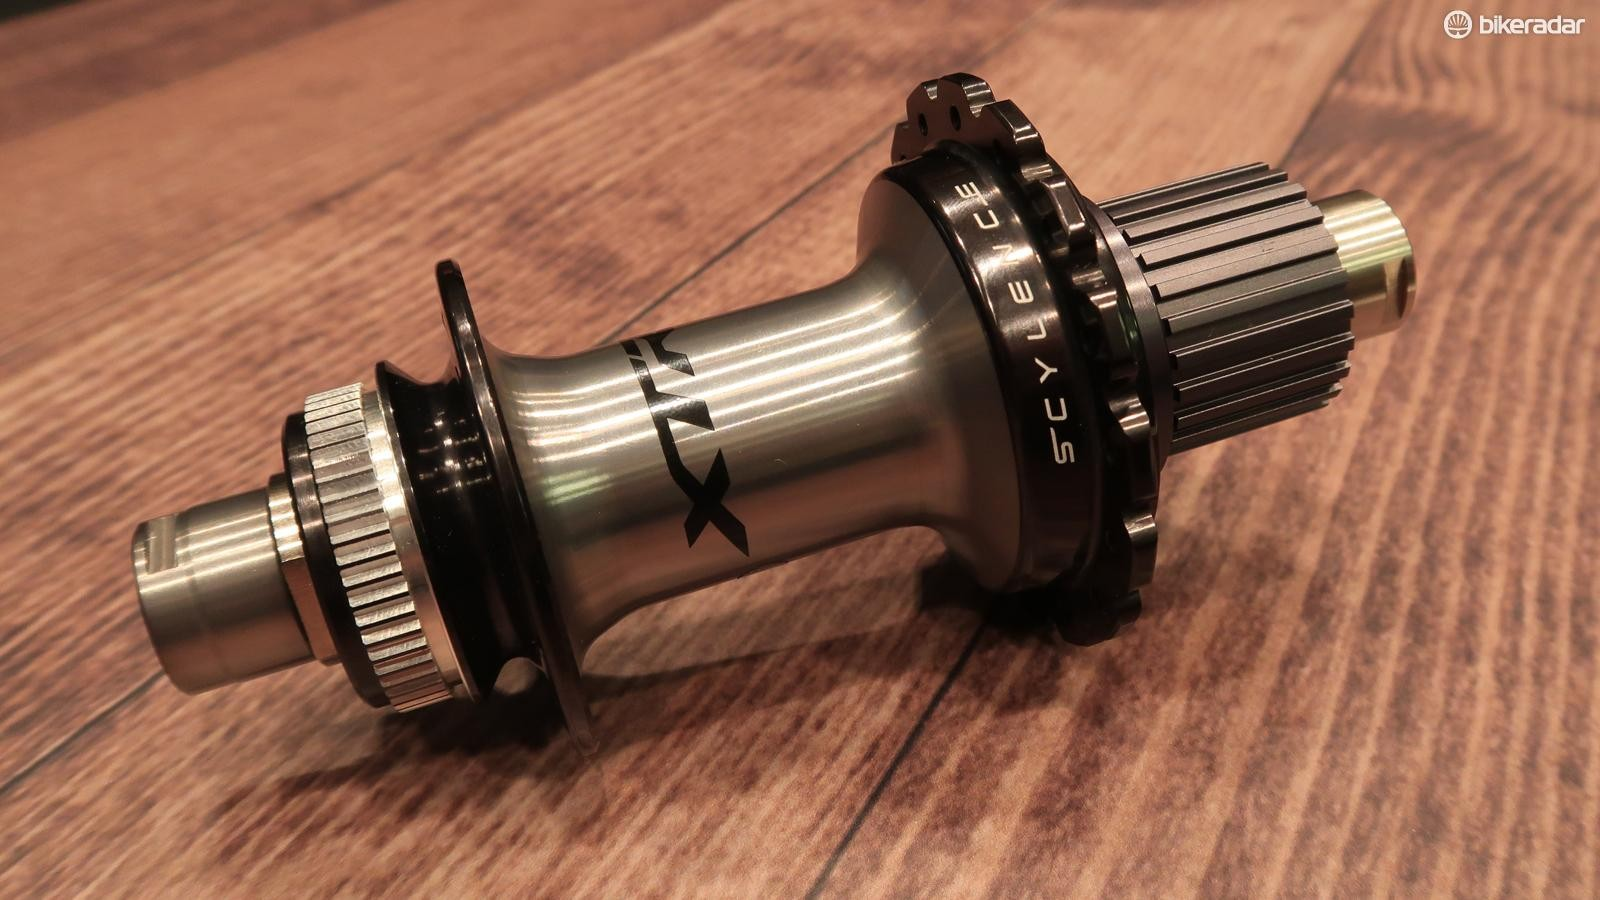 The new SCYLENCE hub offers relatively fast engagement that's completely silent